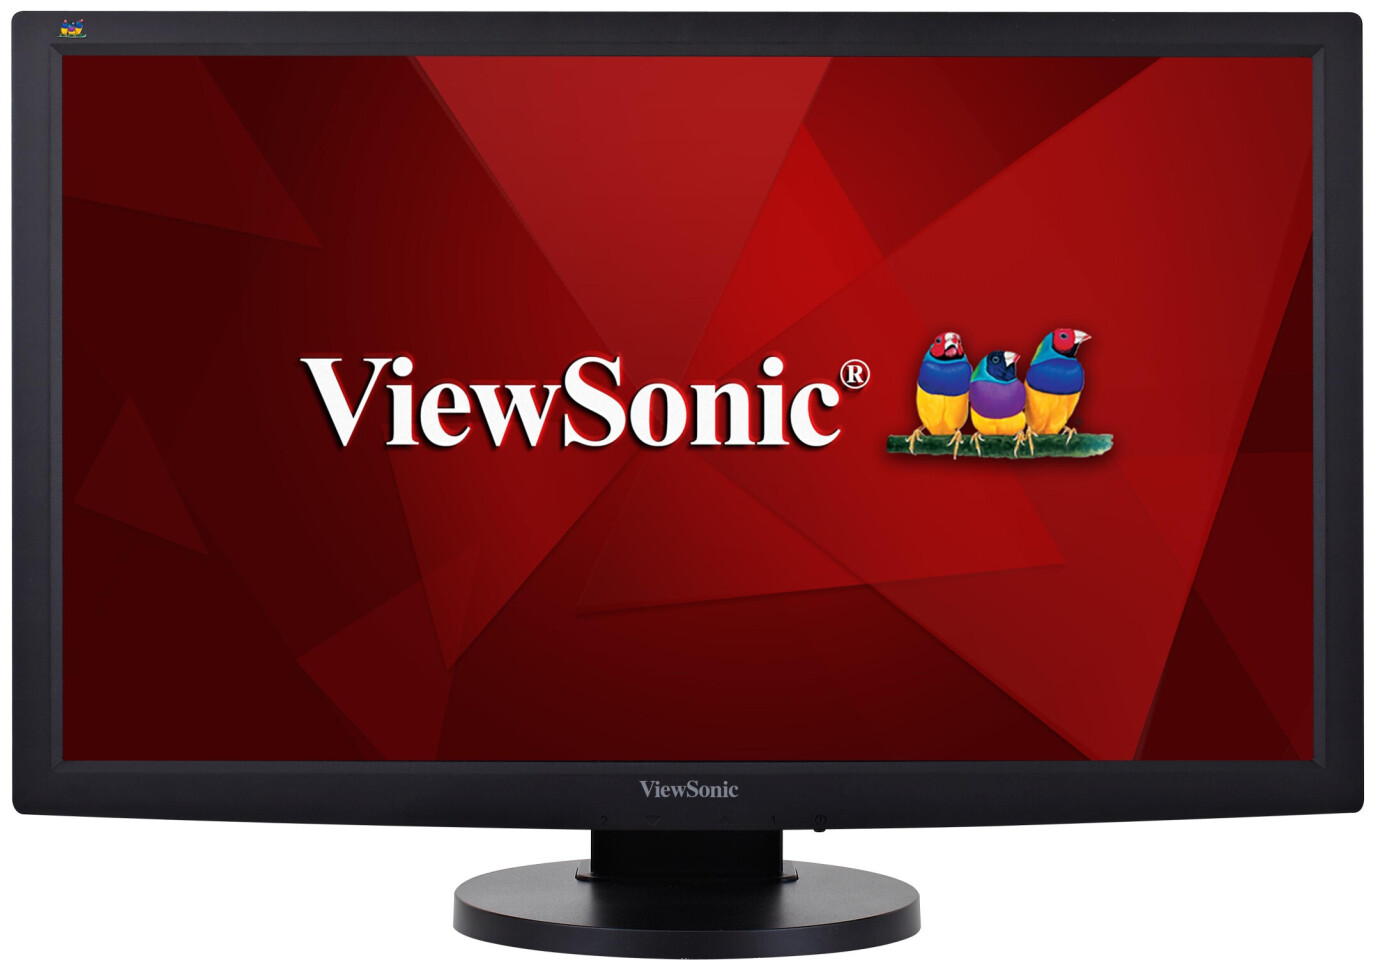 "ViewSonic VG2233-LED 22"" LCD Monitor mit Full-HD und 5ms Reaktionszeit"